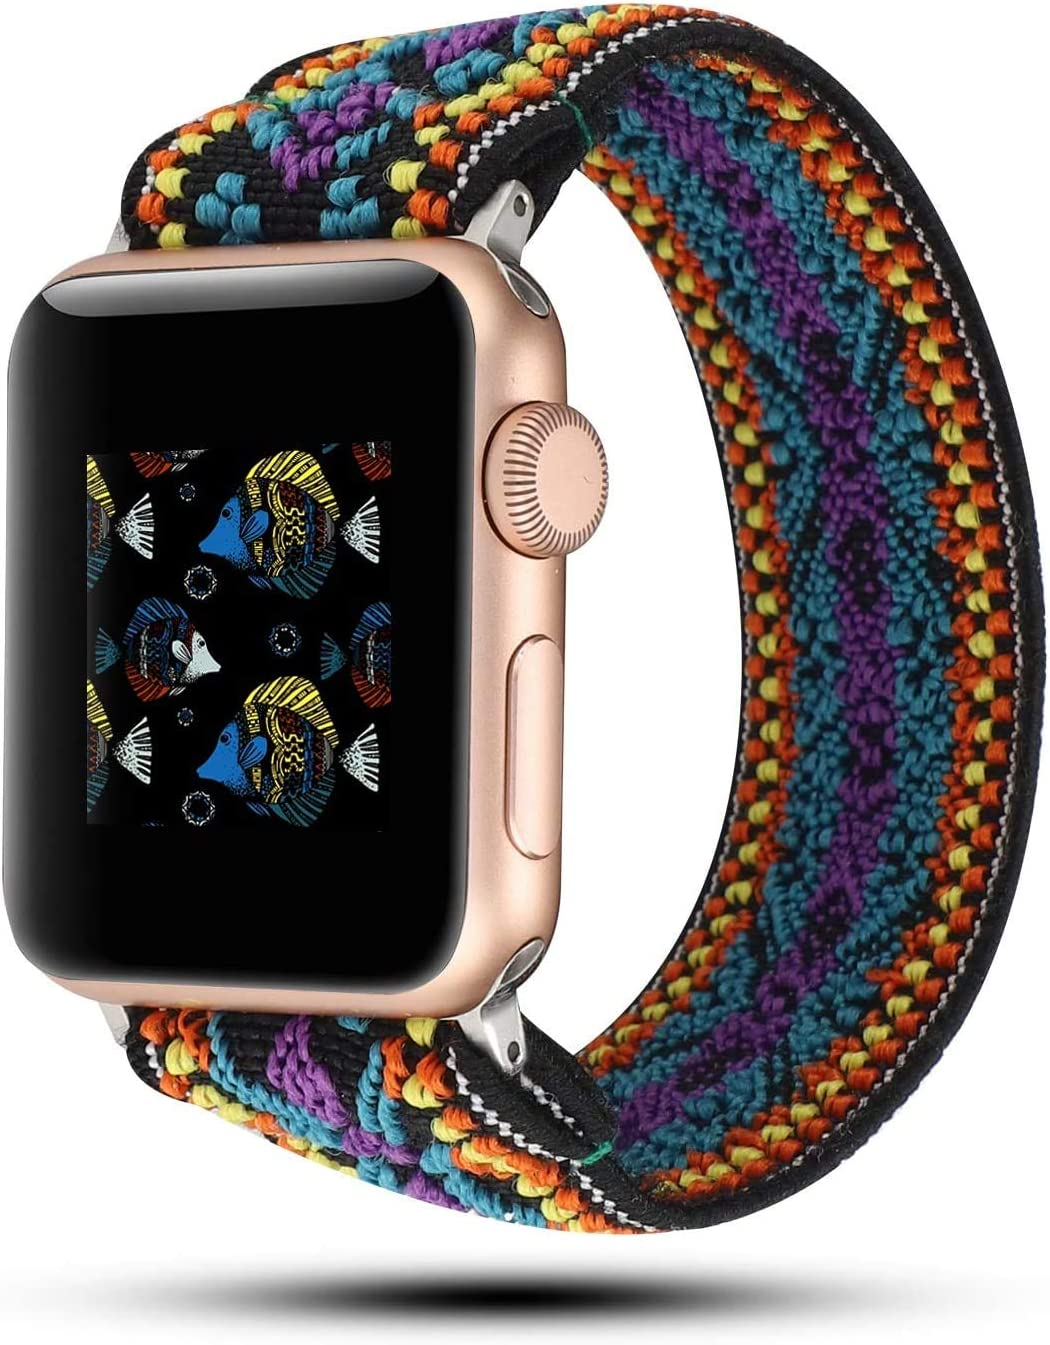 OnederHome Stretchy Sport Loop Strap Compatible for Apple Watch Band 38mm 40mm 42mm 44mm iWatch Series 6/SE/5/4/3/2/1 Stretch Elastics Wristbelt (Purple, 42/44mm for Small Wrist)